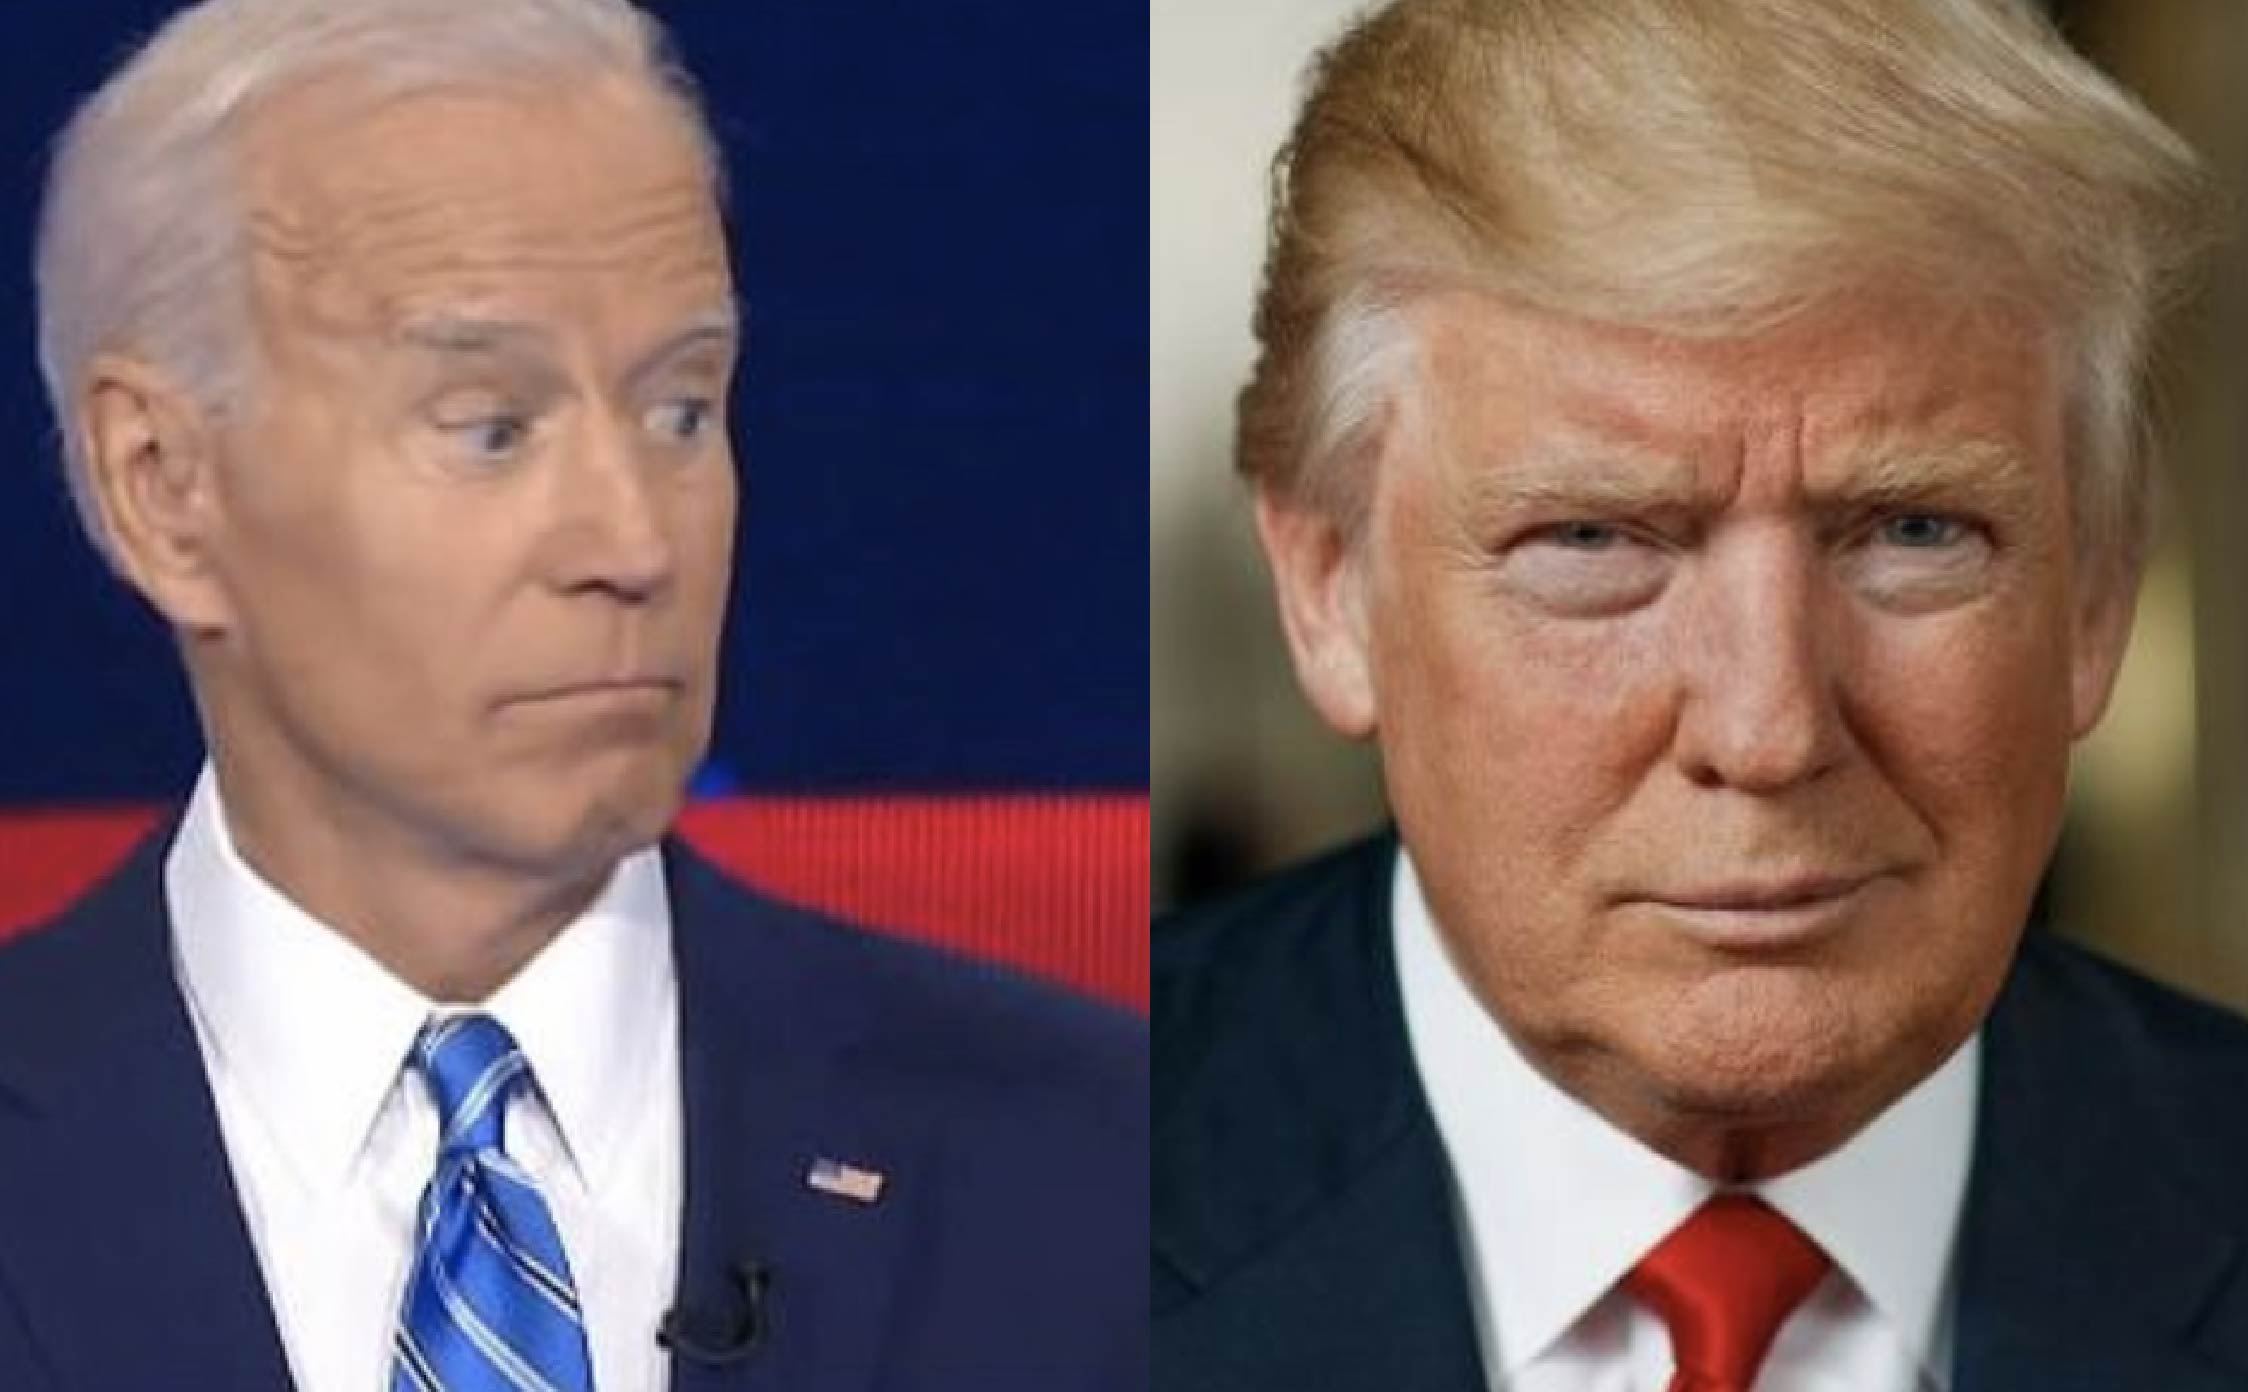 President Trump Just Put Biden in the Hot Seat With this Stunning New Debate Challenge